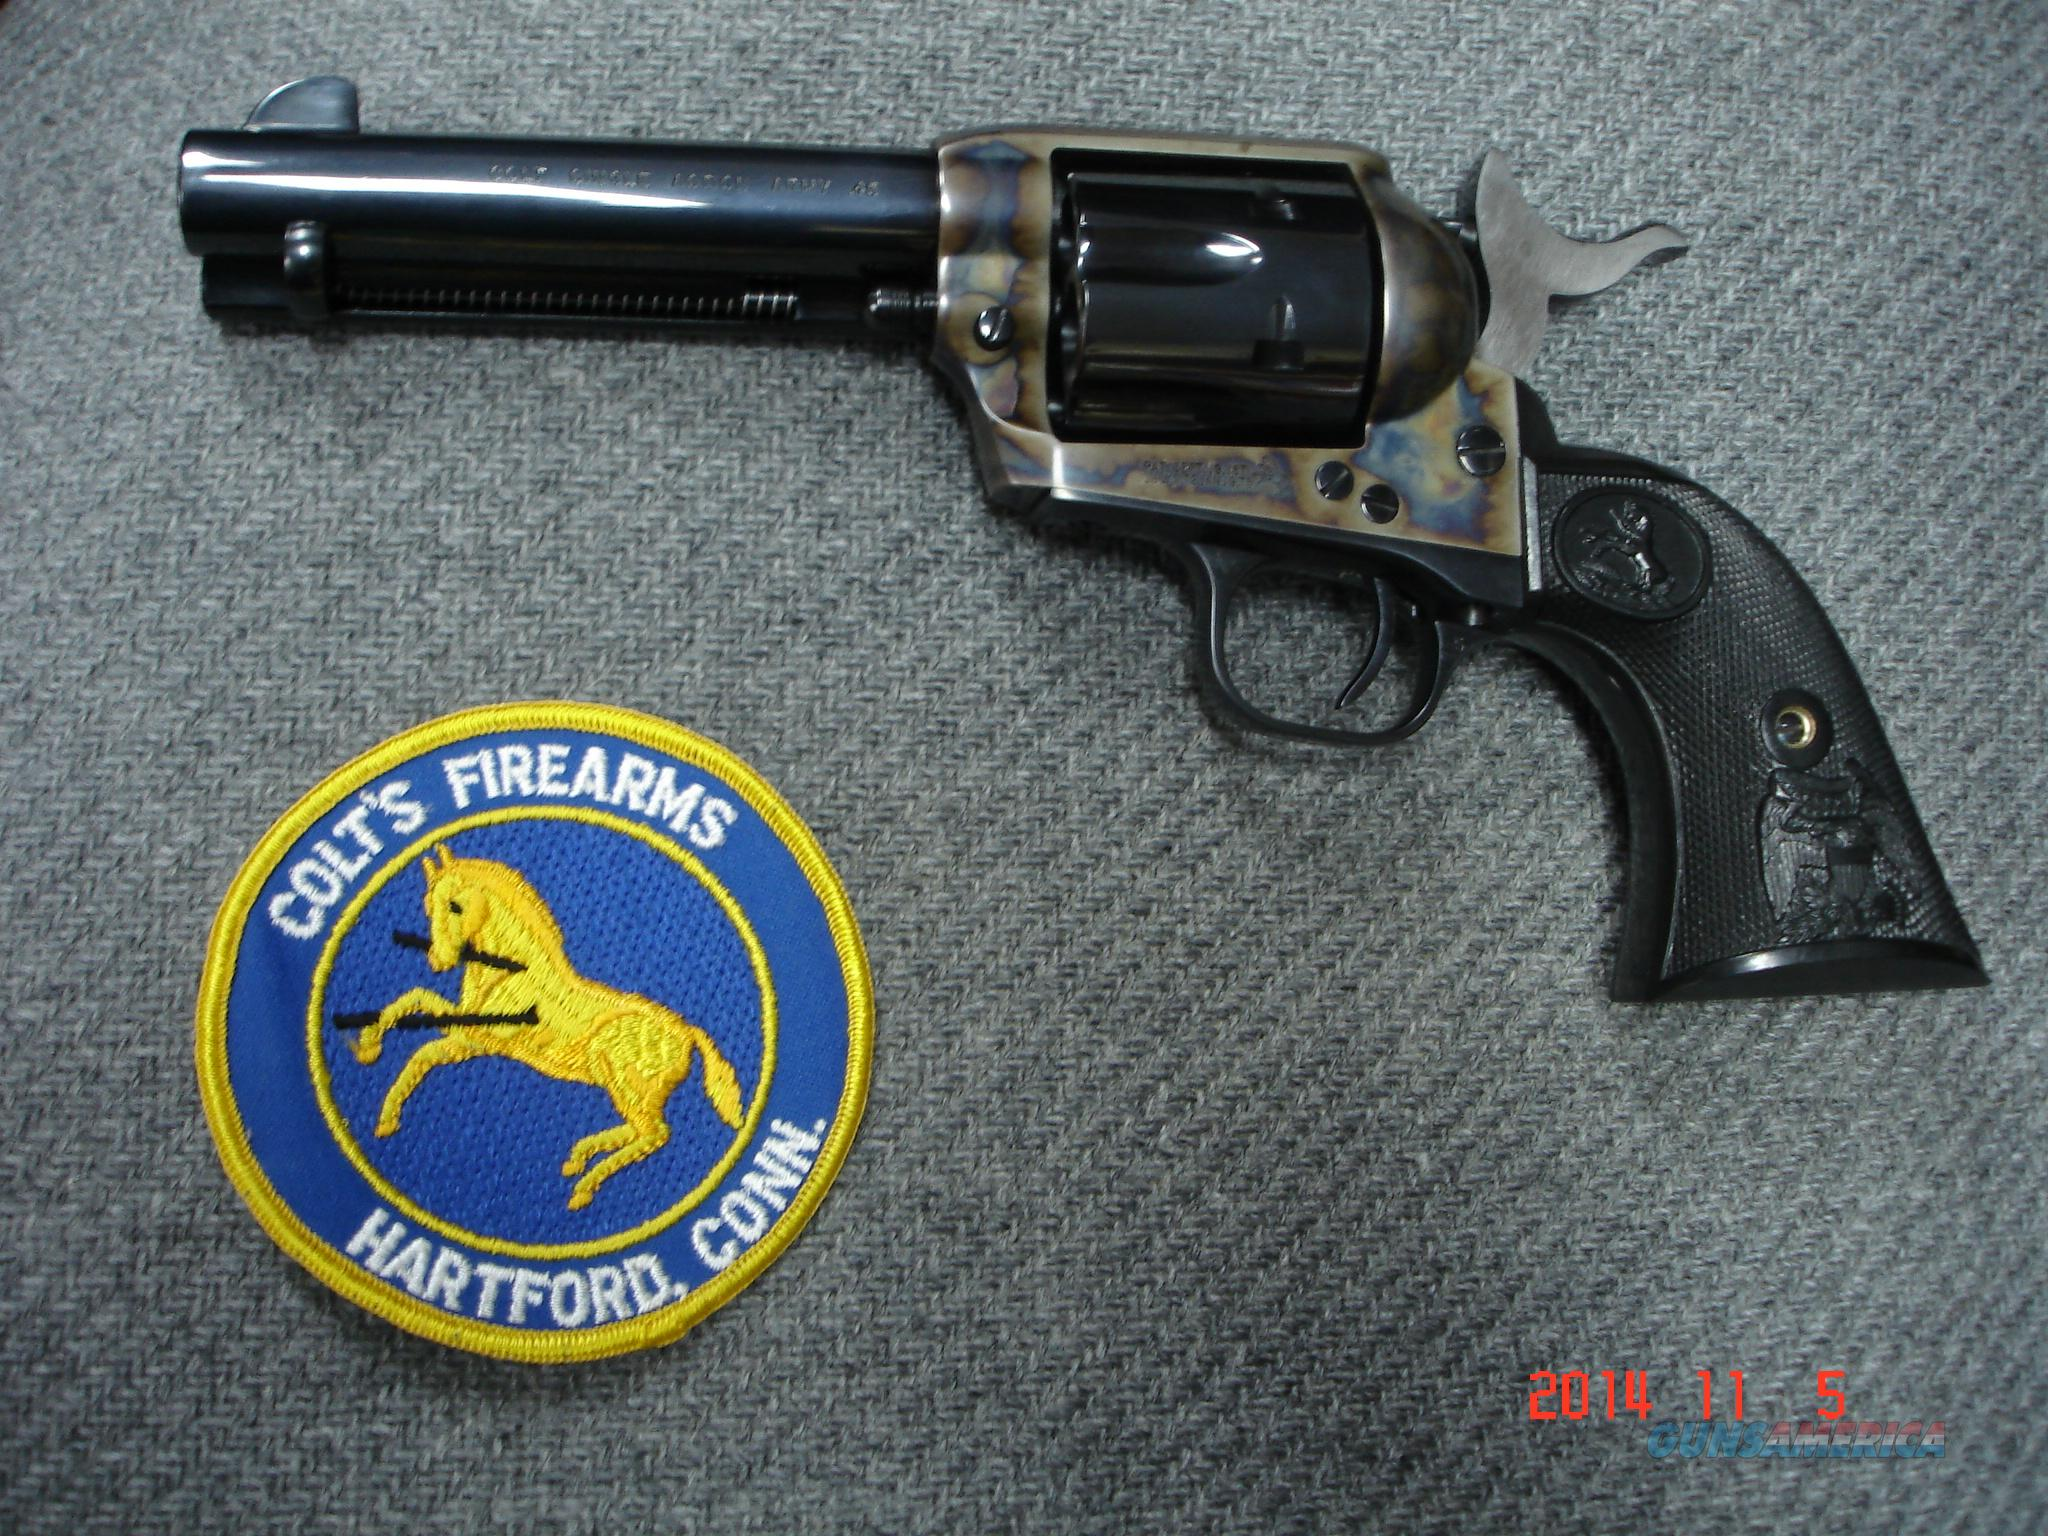 "Colt SAA 3rd. 4 3/4"" B&C .45 Colt Model P-1840 New no box  Guns > Pistols > Colt Single Action Revolvers - 3rd Gen."